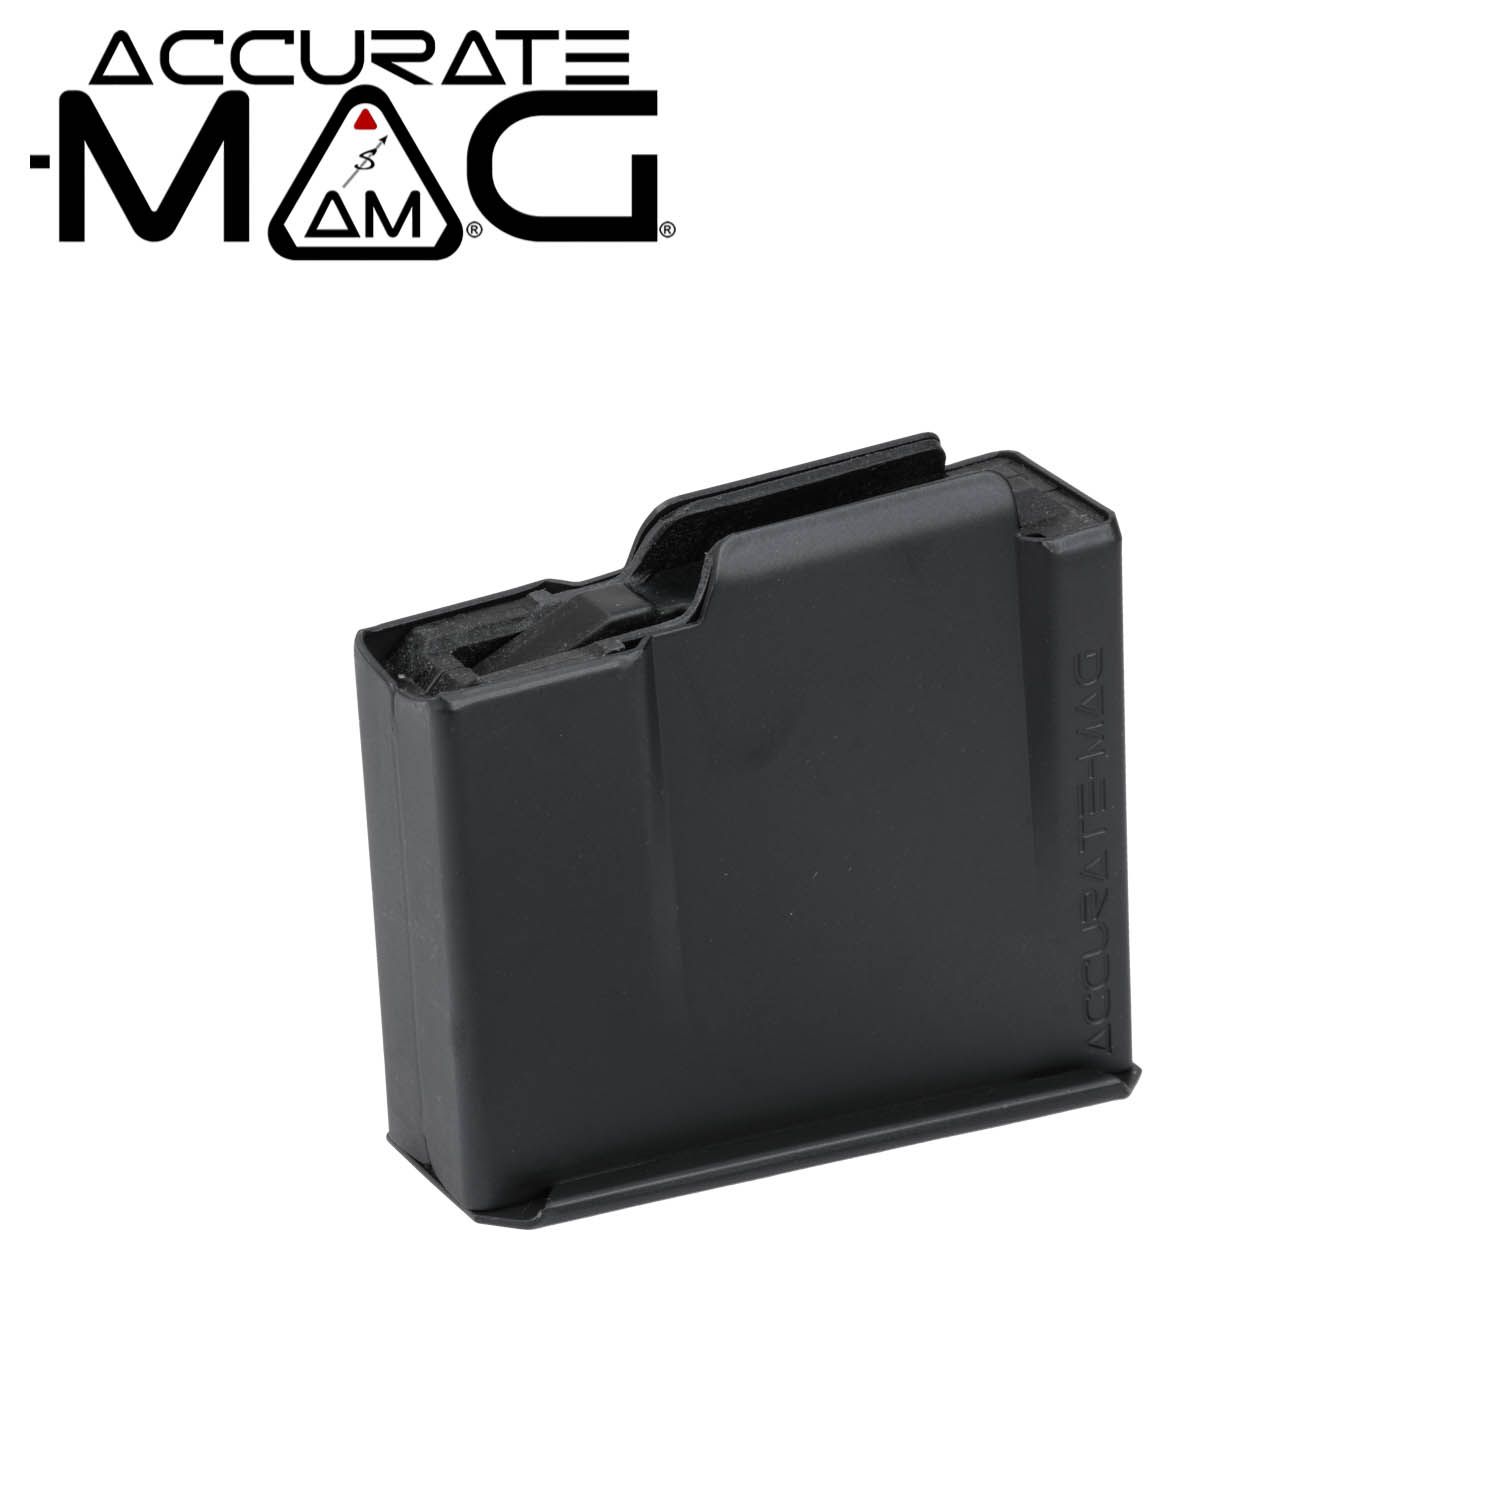 Accurate-Mag AICS Pattern Double Stack Magazine,  223 Rem 5 Round: Midwest  Gun Works